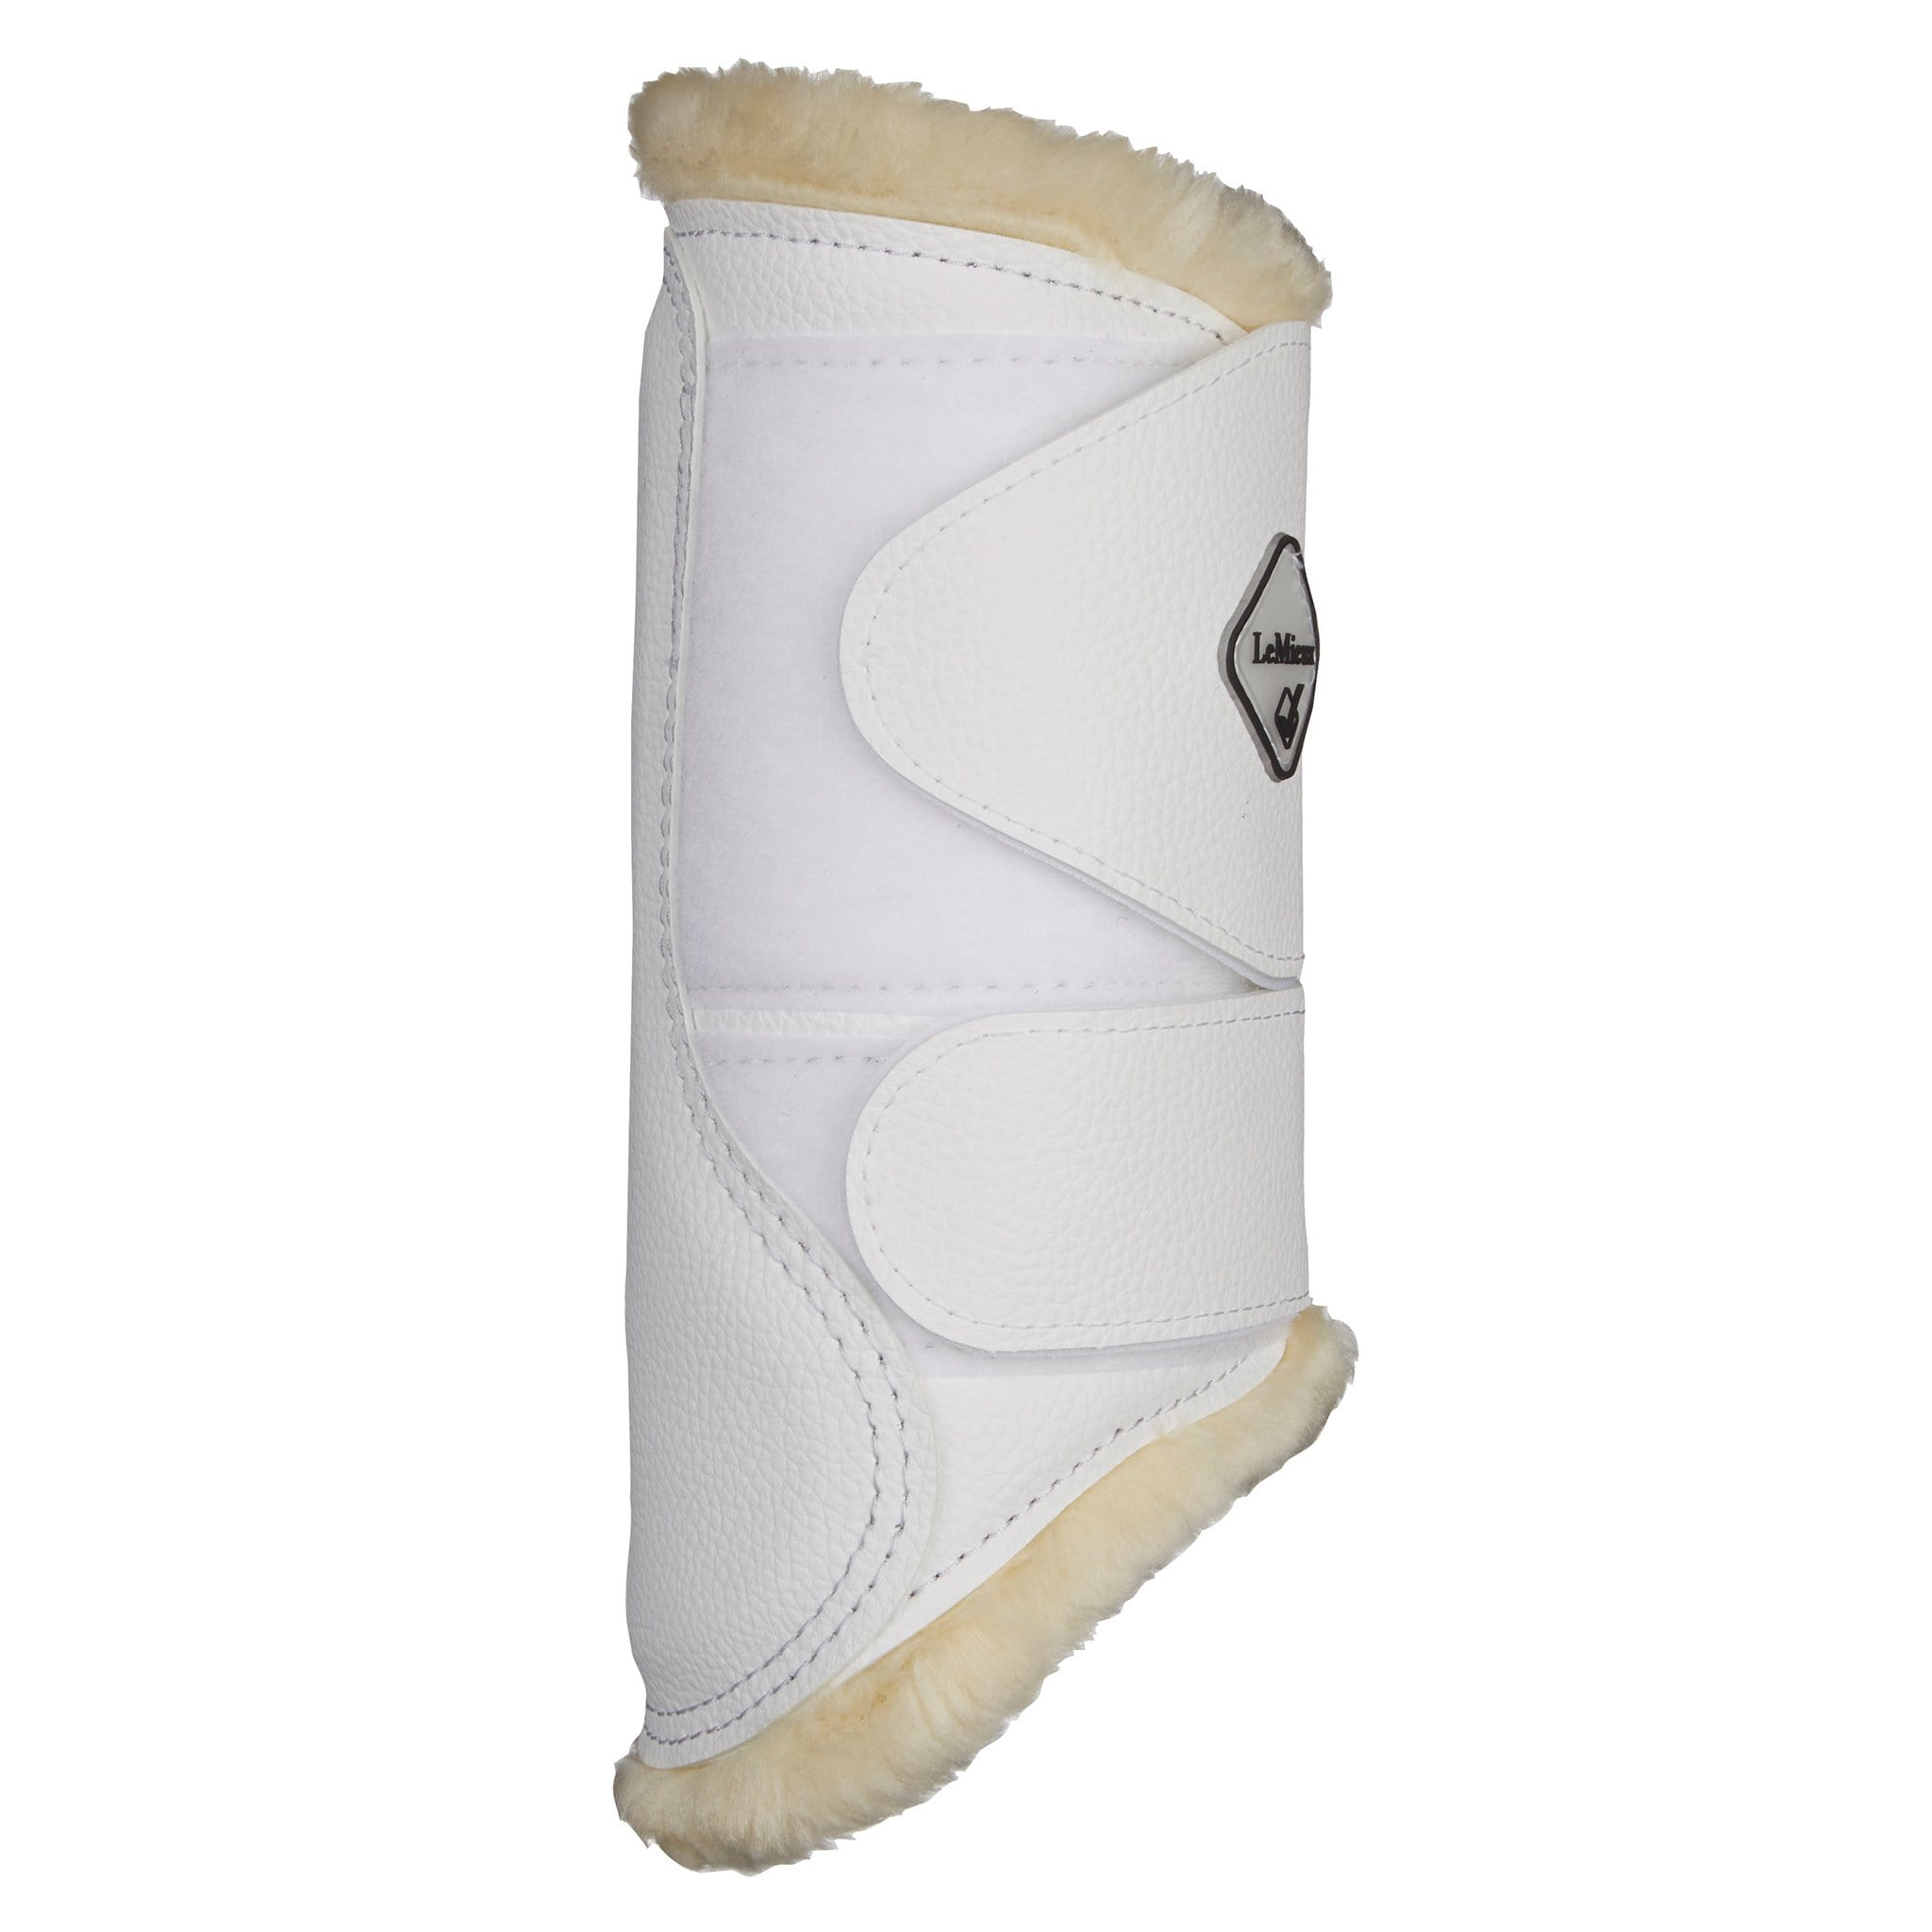 LeMieux Fleece Lined Brushing Boots White Rear View 8950